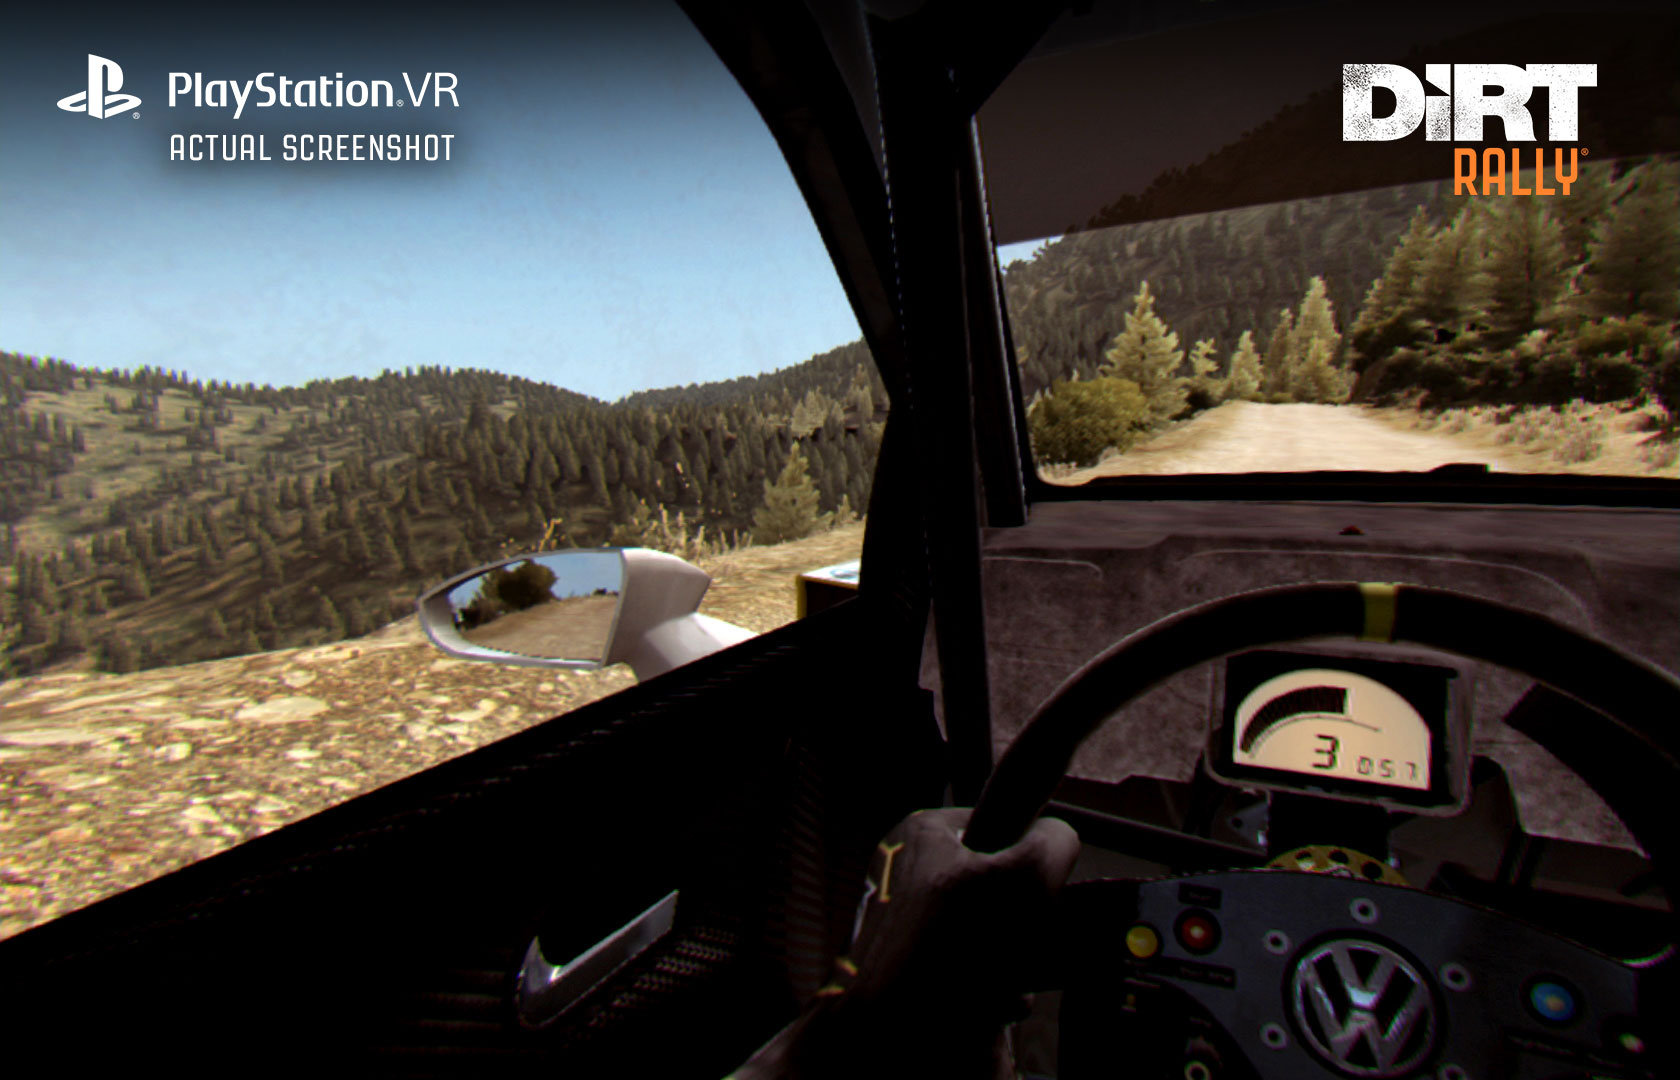 DiRT Rally is even more pulse-pounding on PSVR